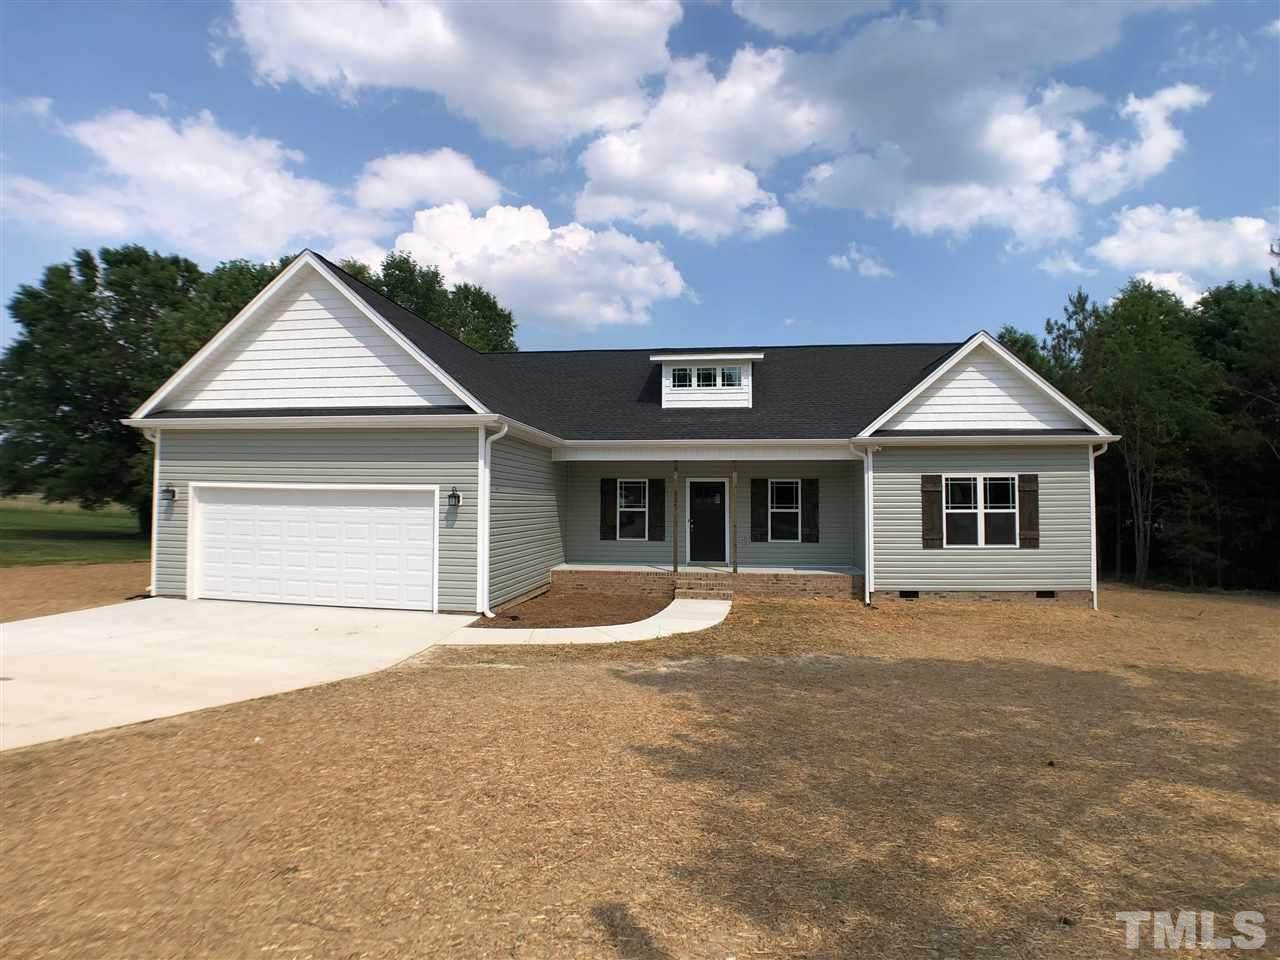 5010 Odell King Road - Photo 1